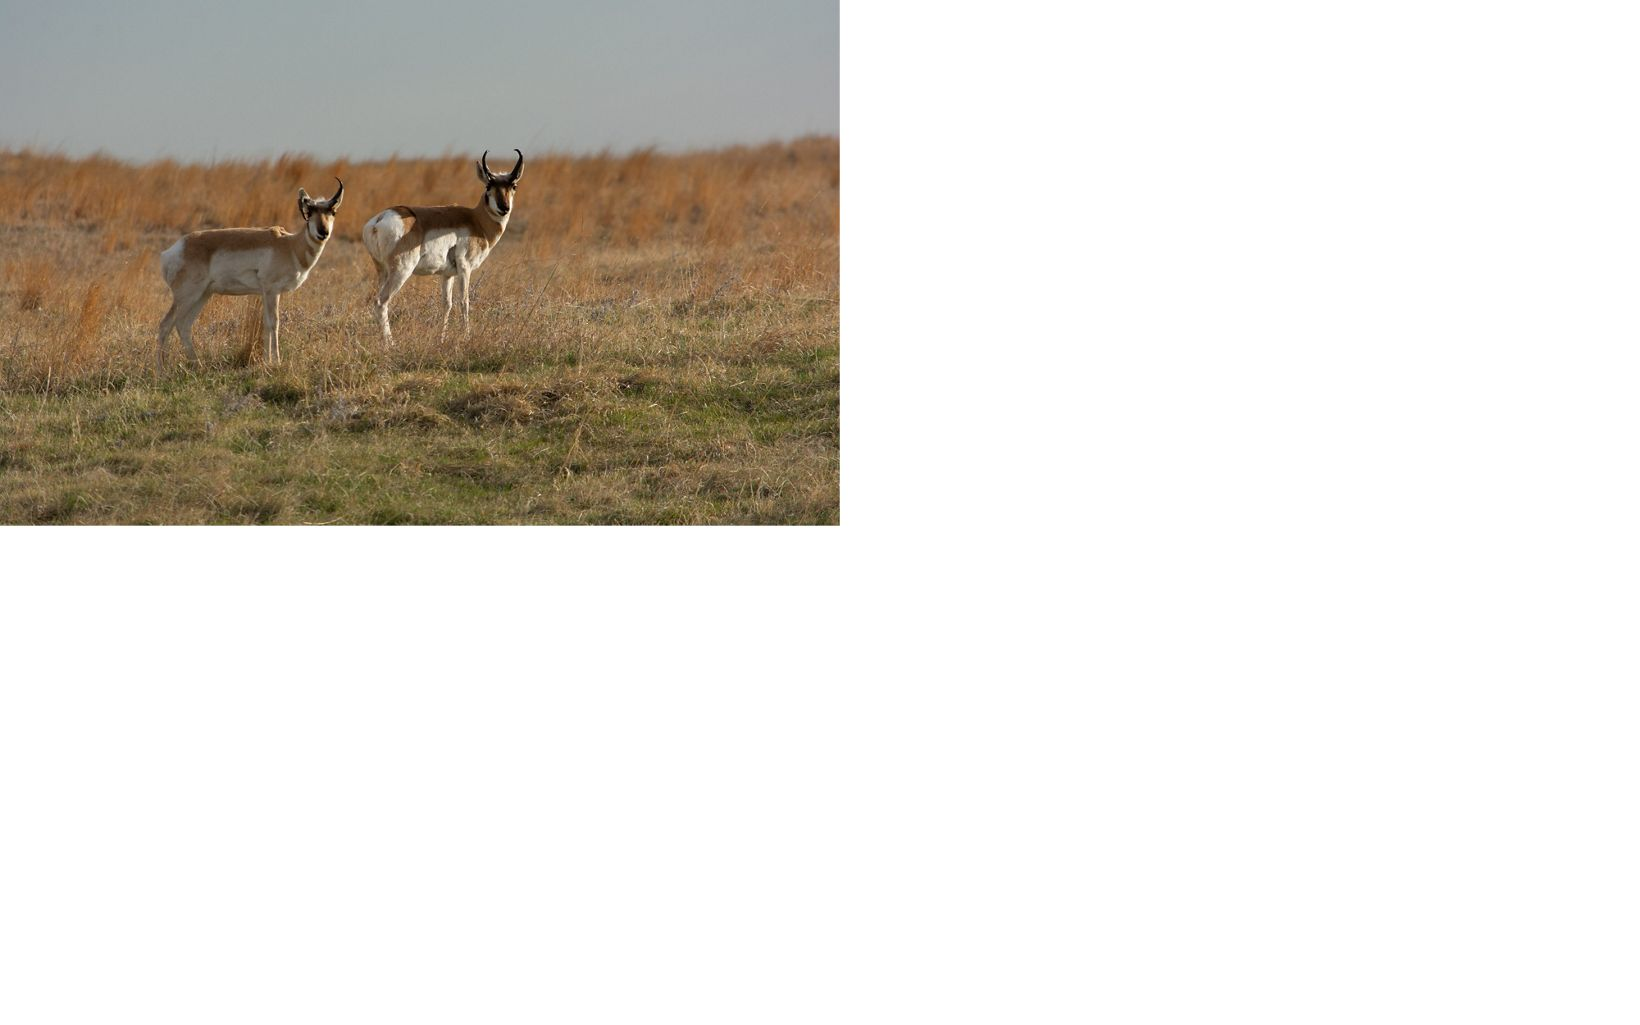 A single pronghorn standing in prairie grasses looking at the camera.